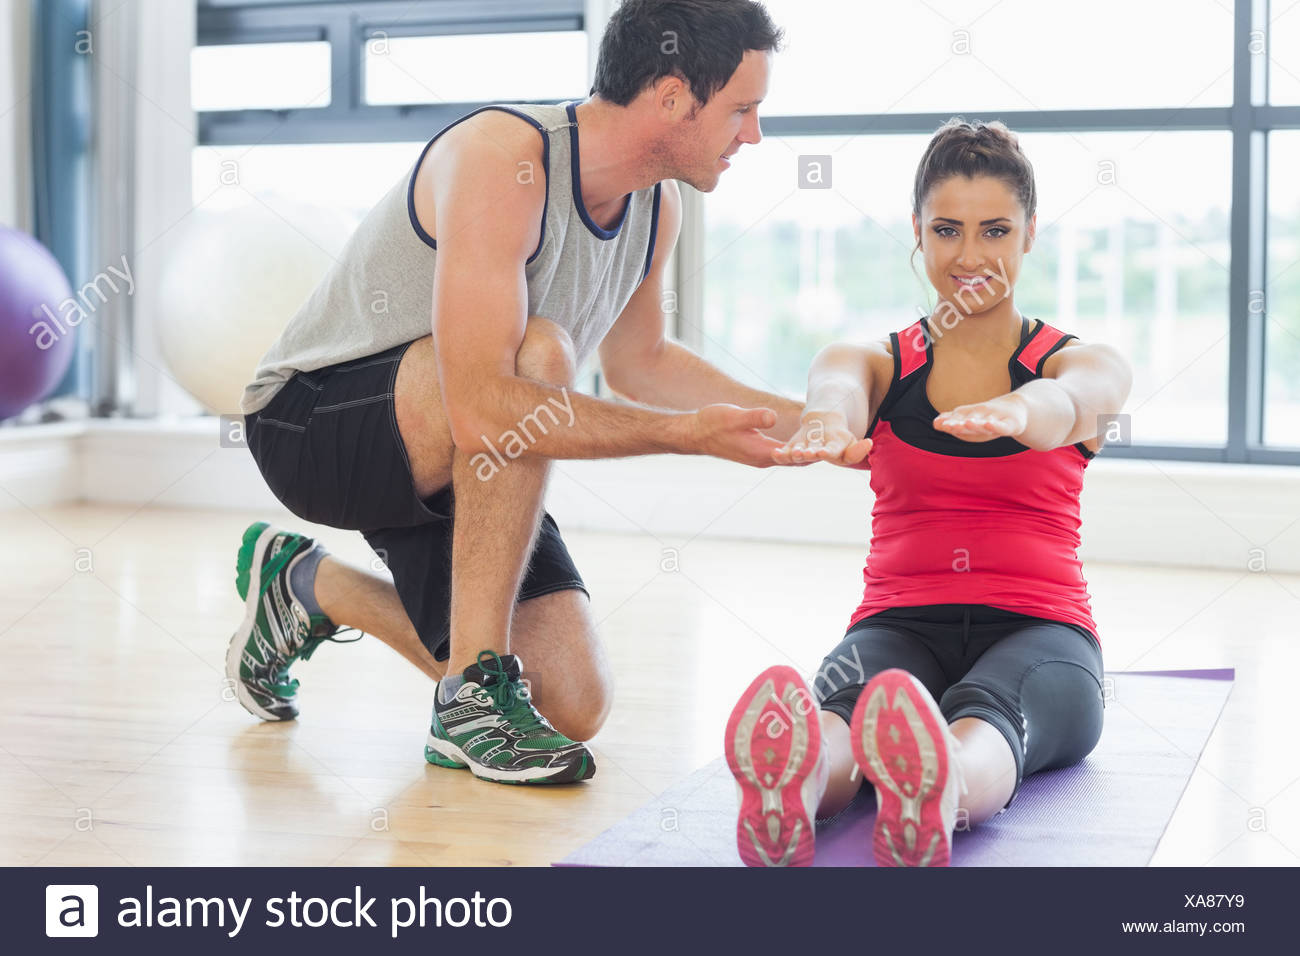 Male trainer assisting woman with pilate exercises in fitness studio - Stock Image